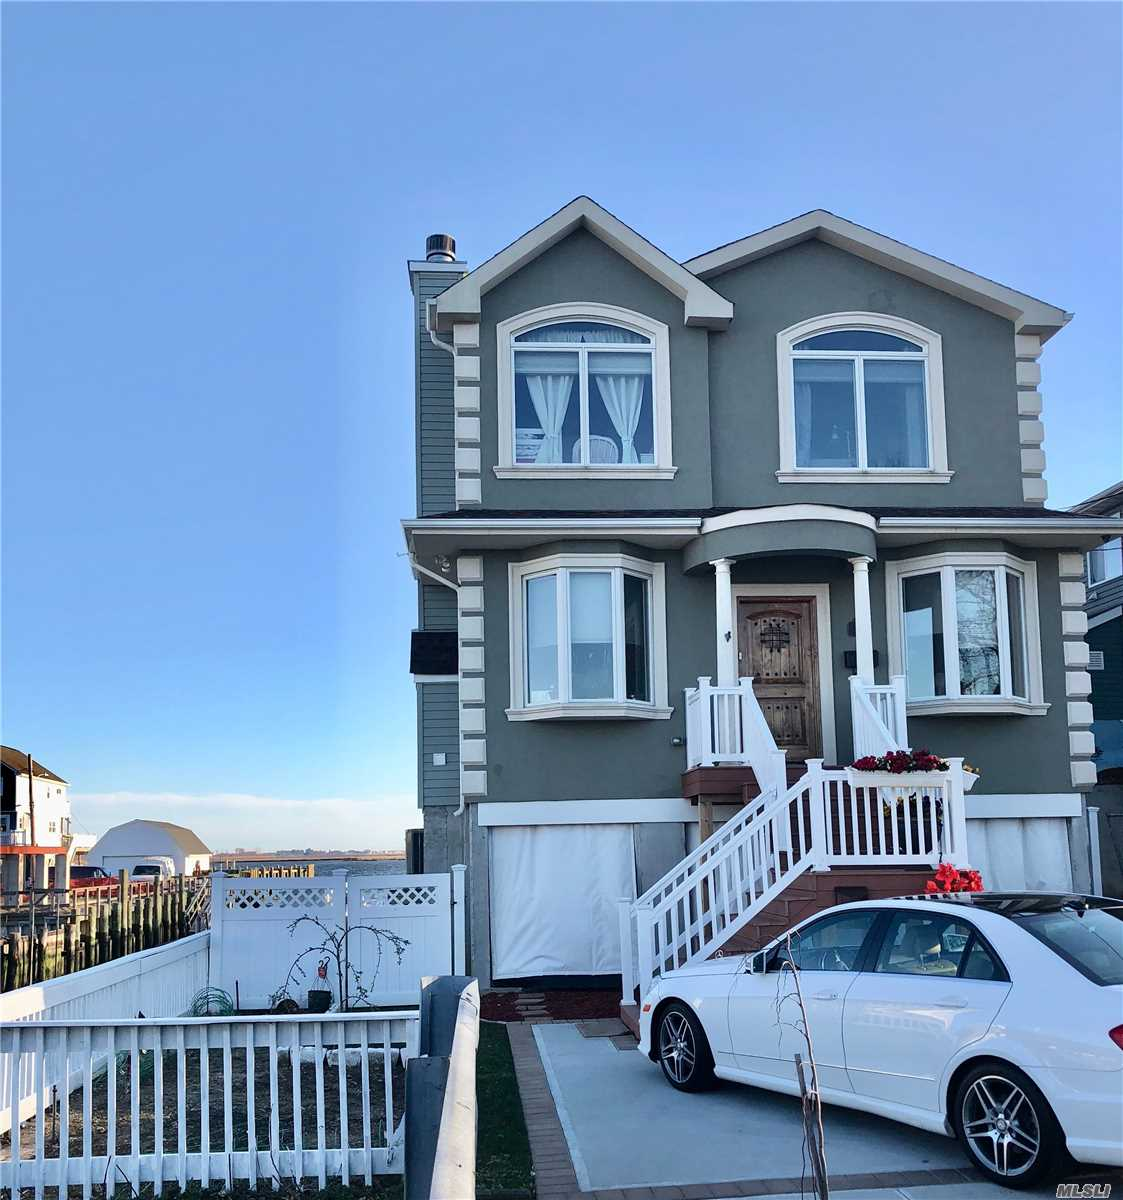 Waterfront FEMA Compliant raised home, totally renovated with hi-end appliances/fixtures/floors/etc... Beautiful Bay View adjacent to beach, pool, tennis/basketball courts, playground & kayak launch area. Tax grievance approved. Awaiting a 13% reduction. Sonos sound system in every room & backyard. Wrap around Trex decking w/Bayview, boat dock & newly refaced bulkhead.